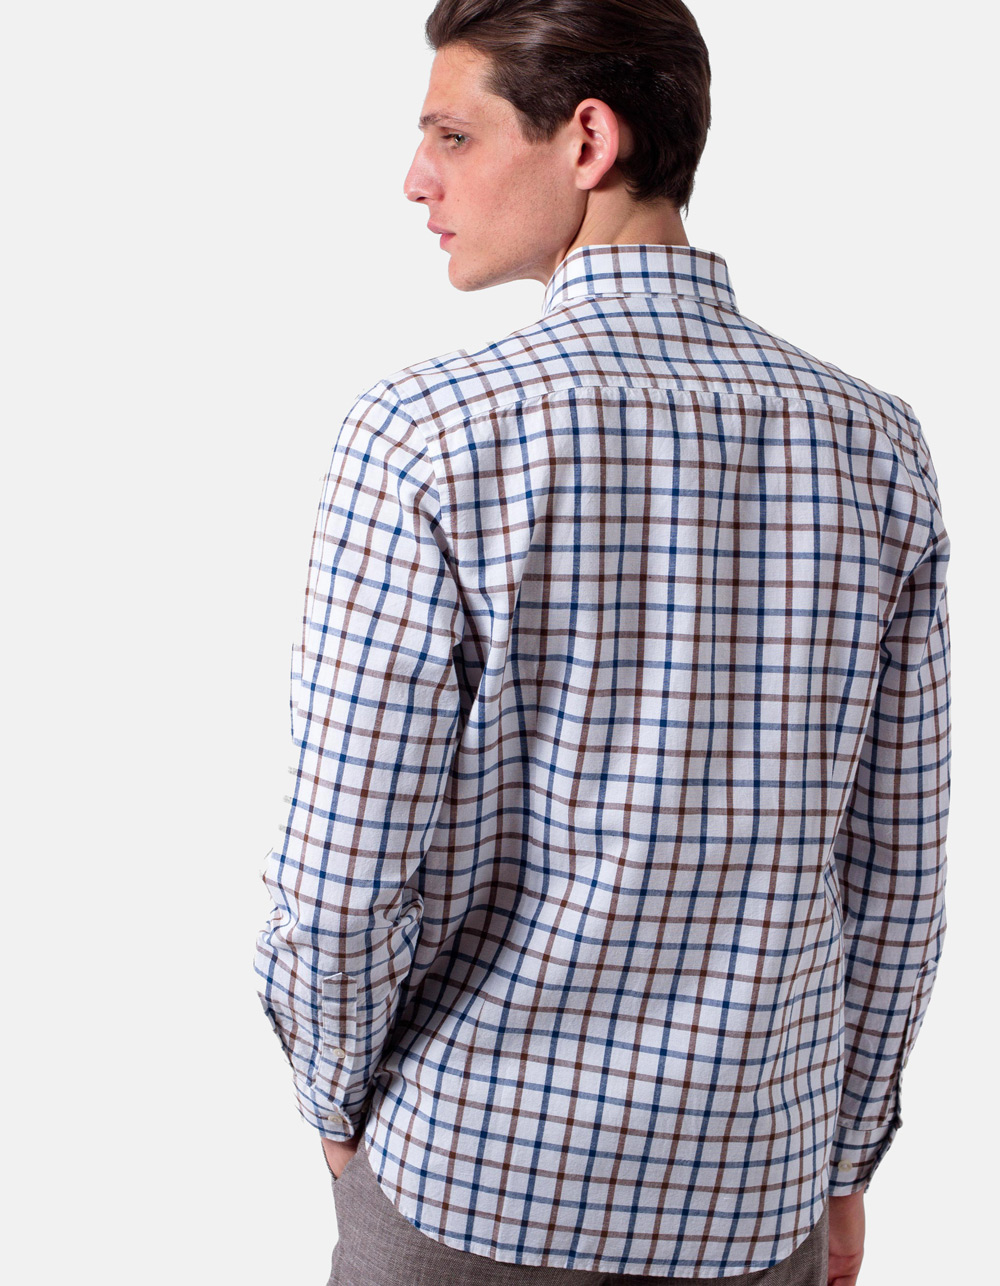 plaid shirt - Backside